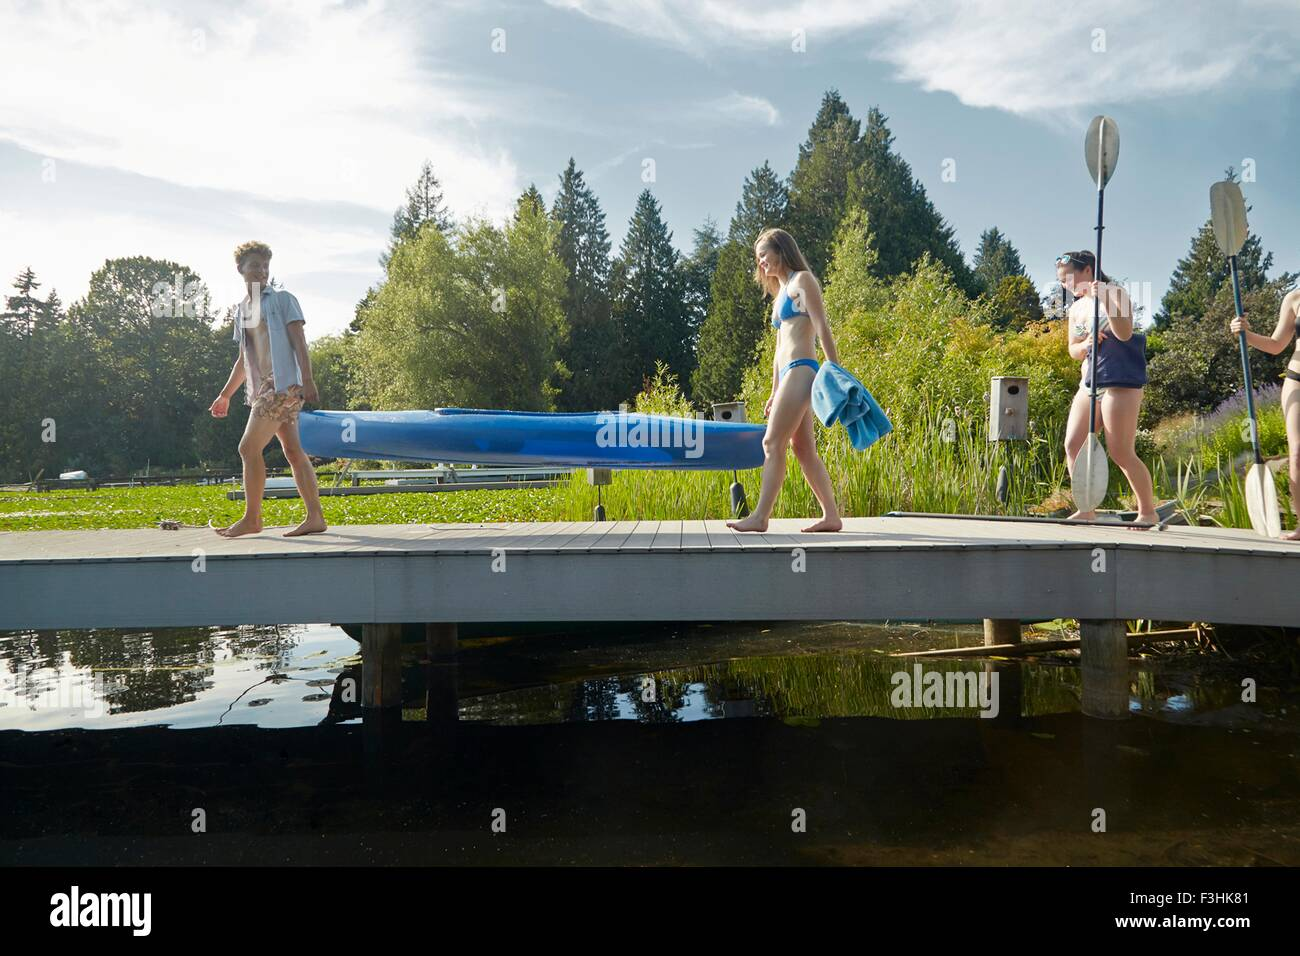 Friends going canoeing in lake, Seattle, Washington, USA - Stock Image